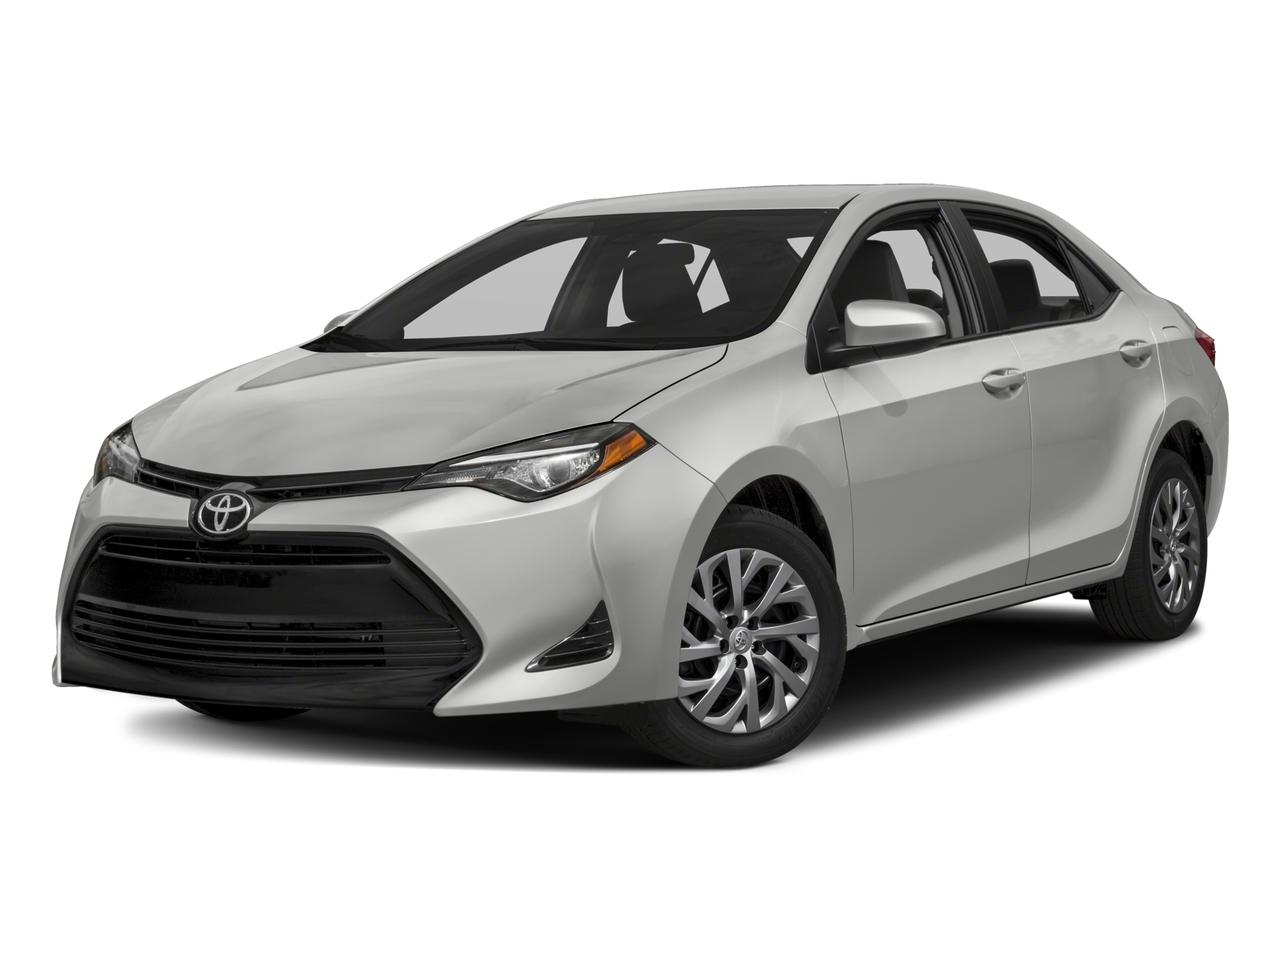 2017 Toyota Corolla Vehicle Photo in Trevose, PA 19053-4984